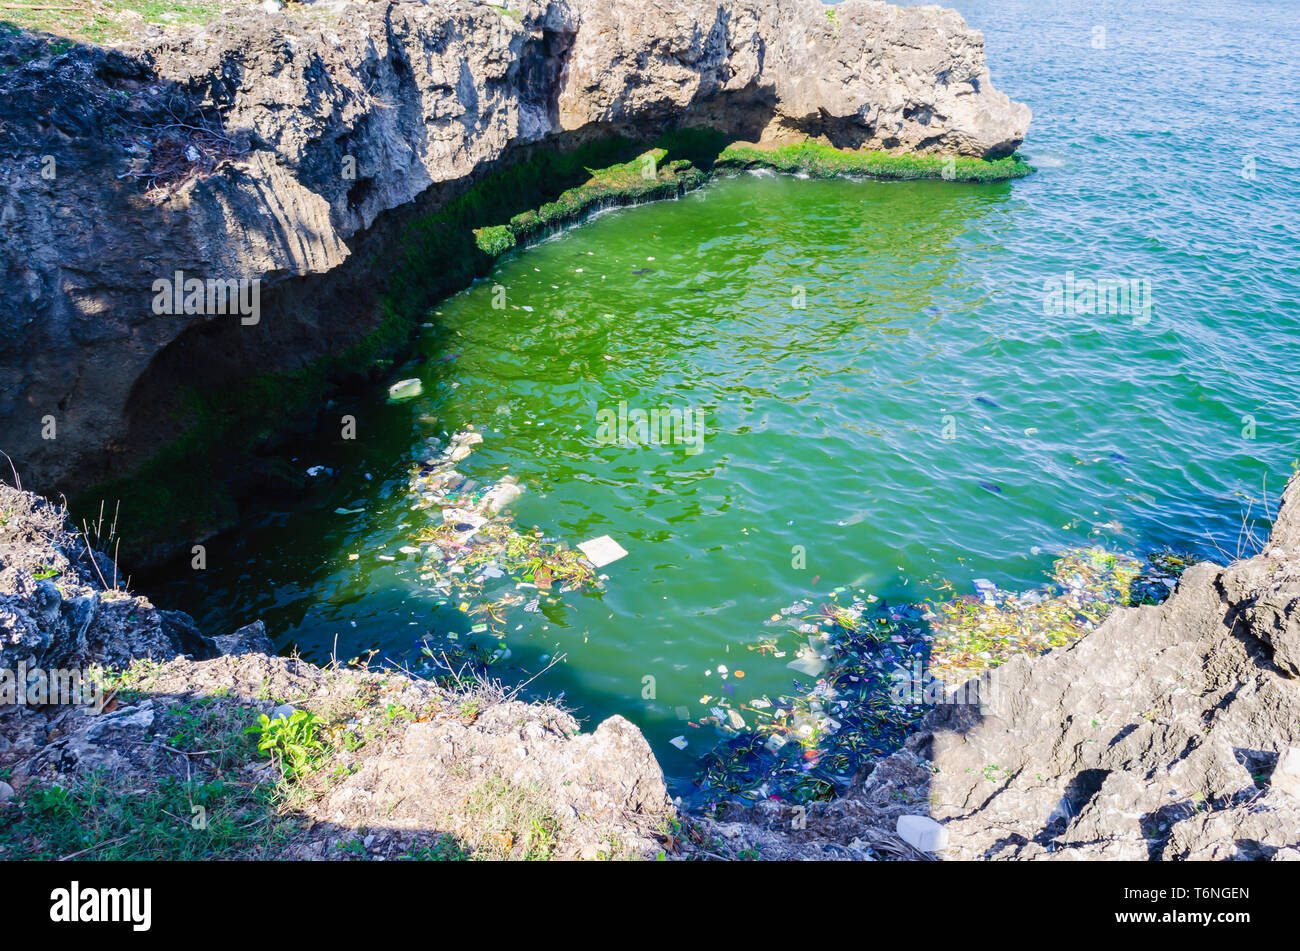 sea polluted by garbage, plastics and wastewater in the city of Santo Domingo, Dominican Republic, where the color and smell is fetid due to polluti - Stock Image